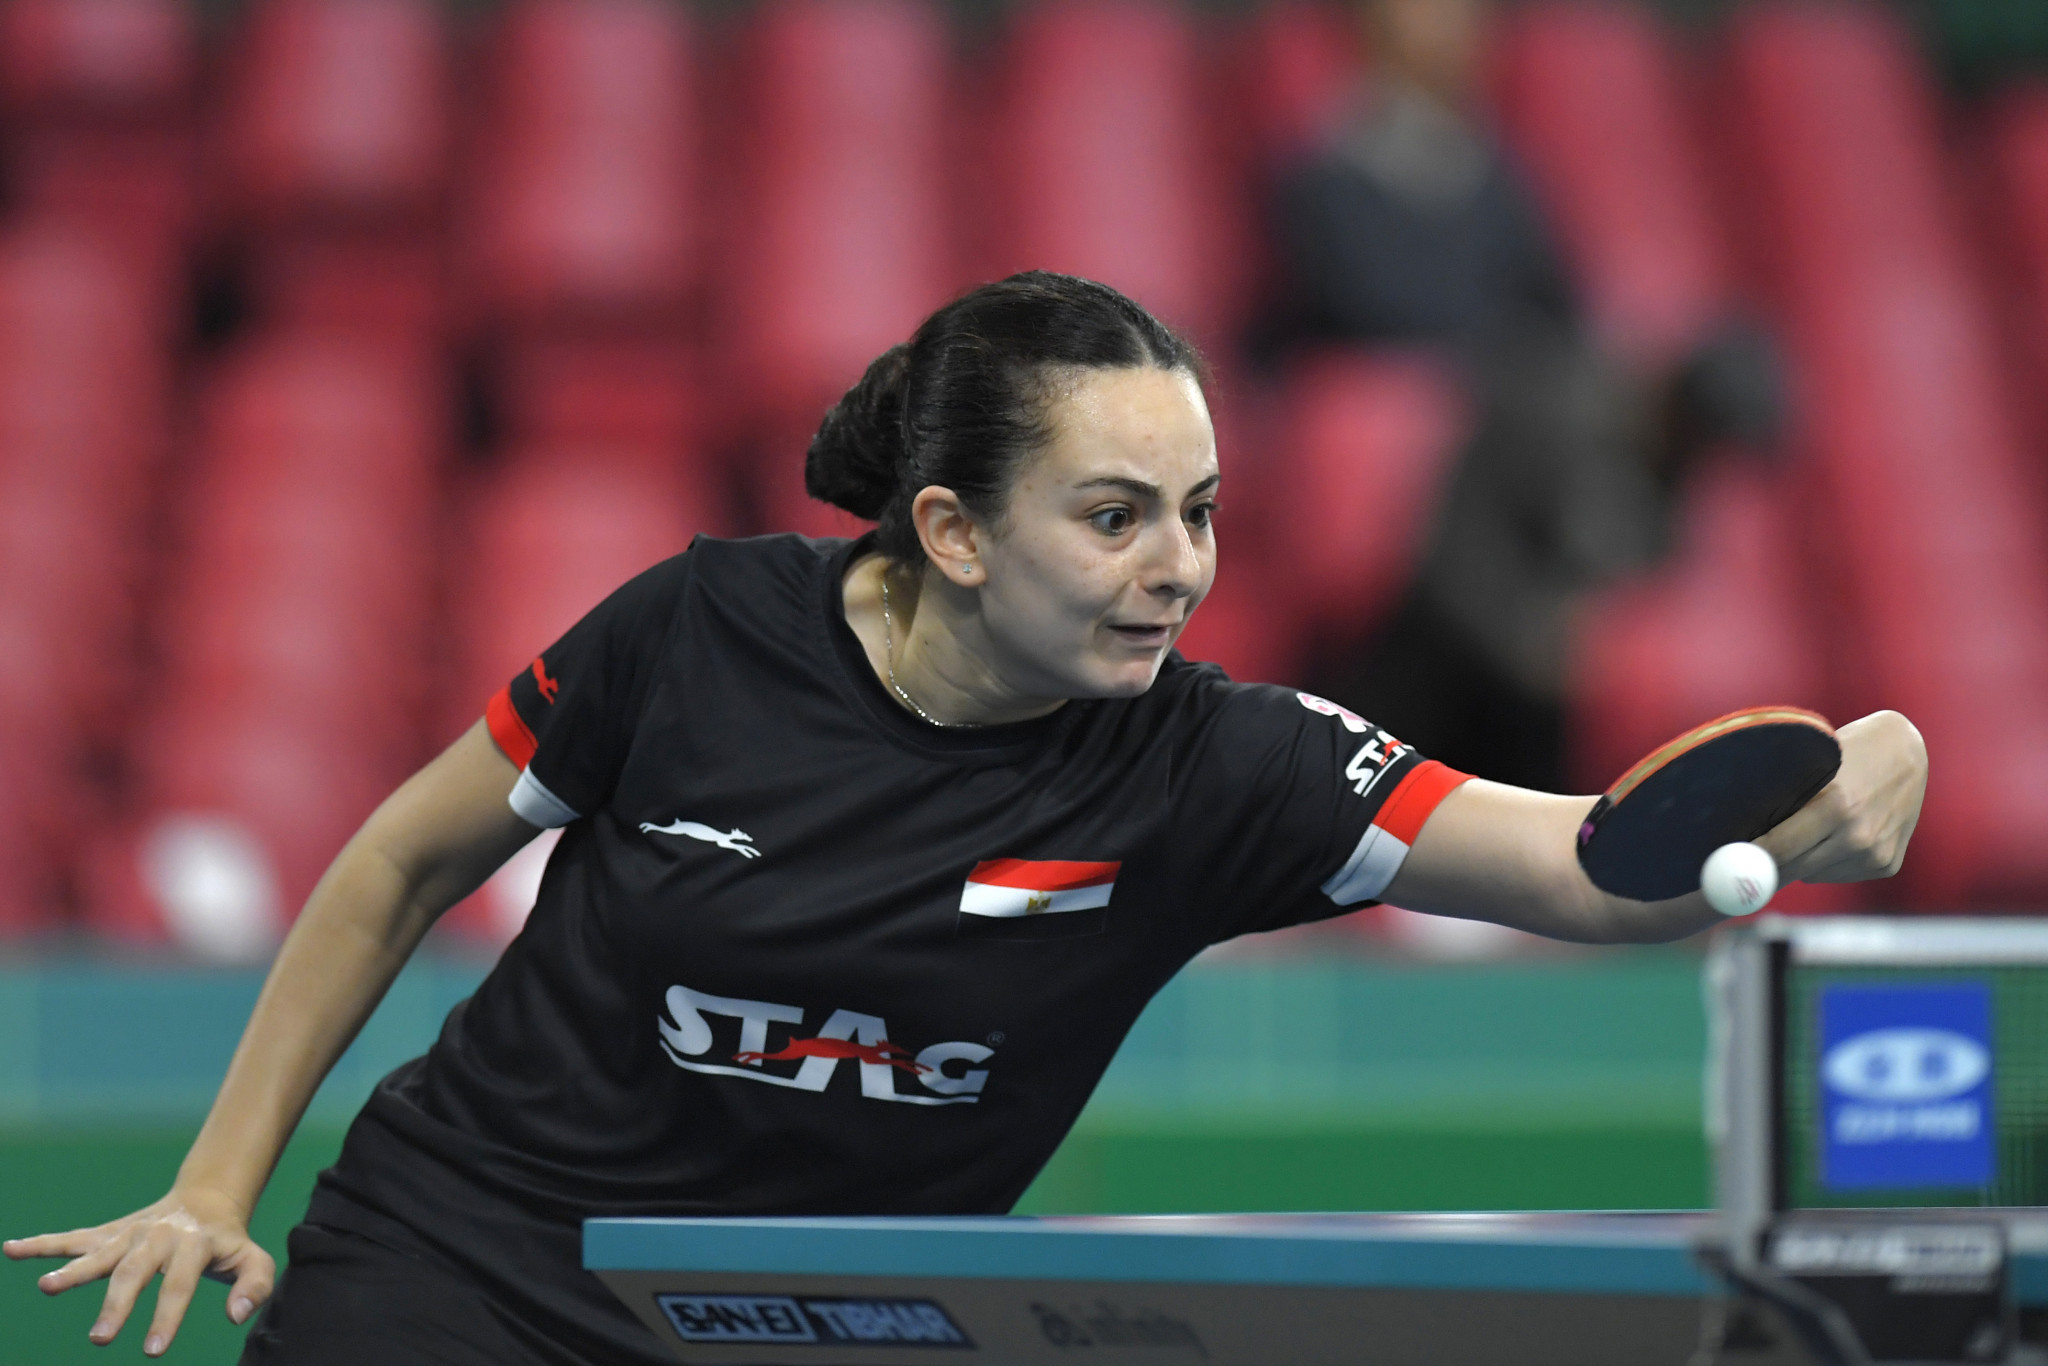 Defending champion Meshref starts strongly at ITTF Africa Top 16 Cup